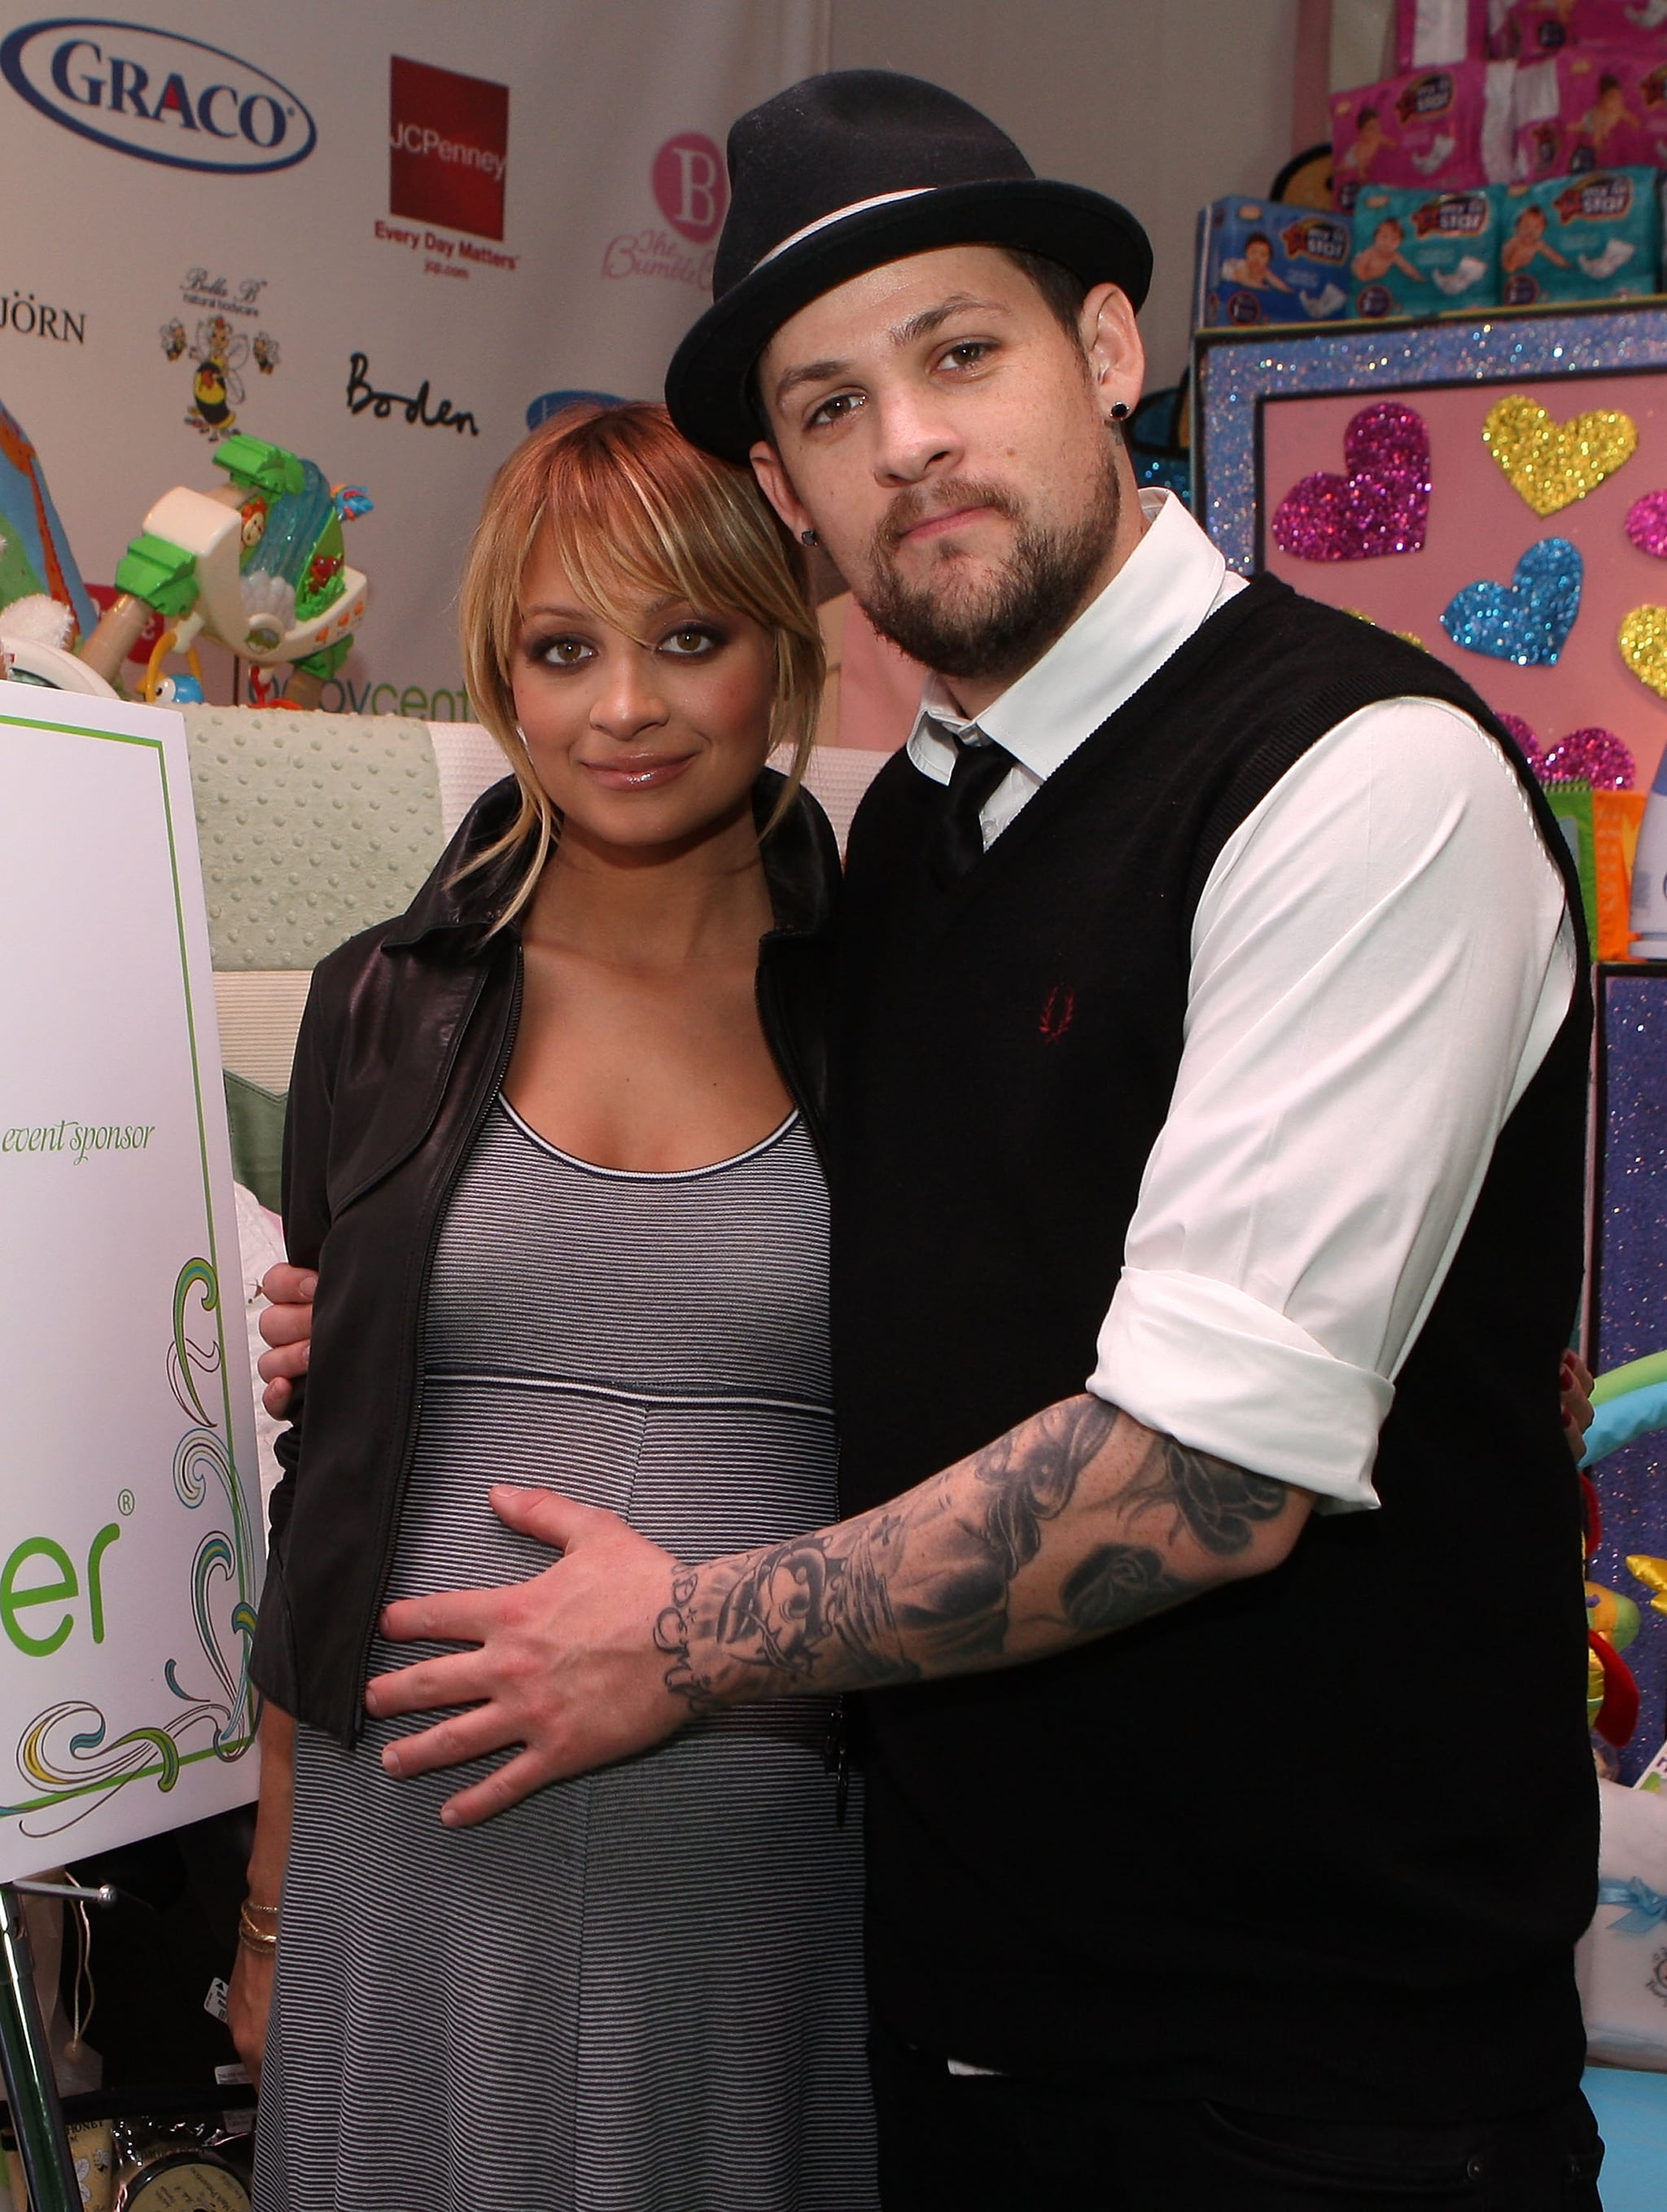 In December 2007, Nicole showed off her growing baby bump while launching The Richie Madden Children's Foundation with Joel Madden, who was then just her boyfriend.